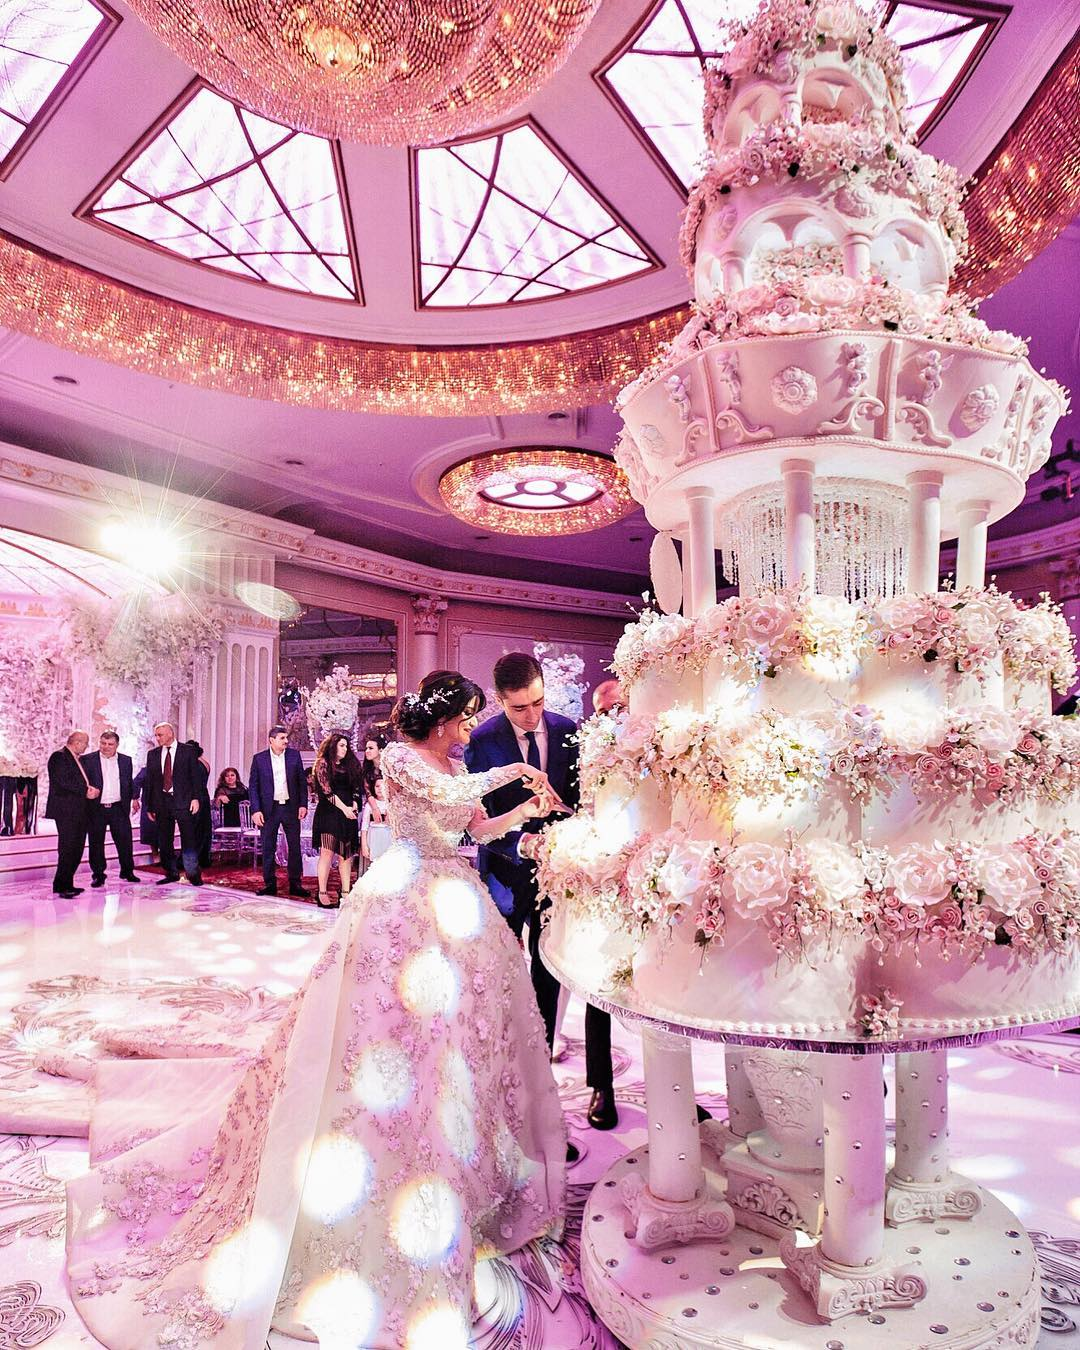 Wedding most cakes extravagant The Daily